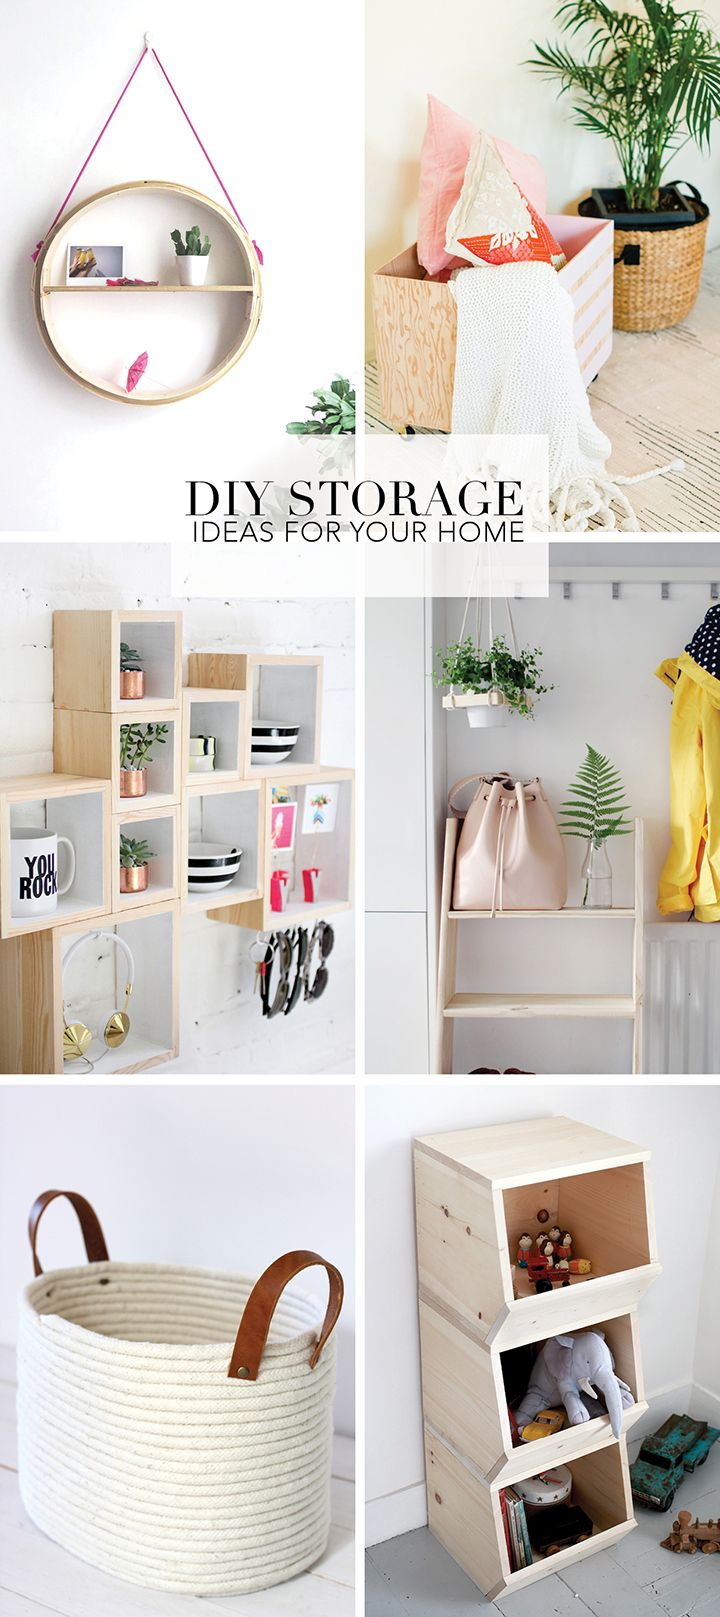 Favorite DIY Home Storage Ideas | ◊ DIY ◊ | Speicherideen, Deko ...